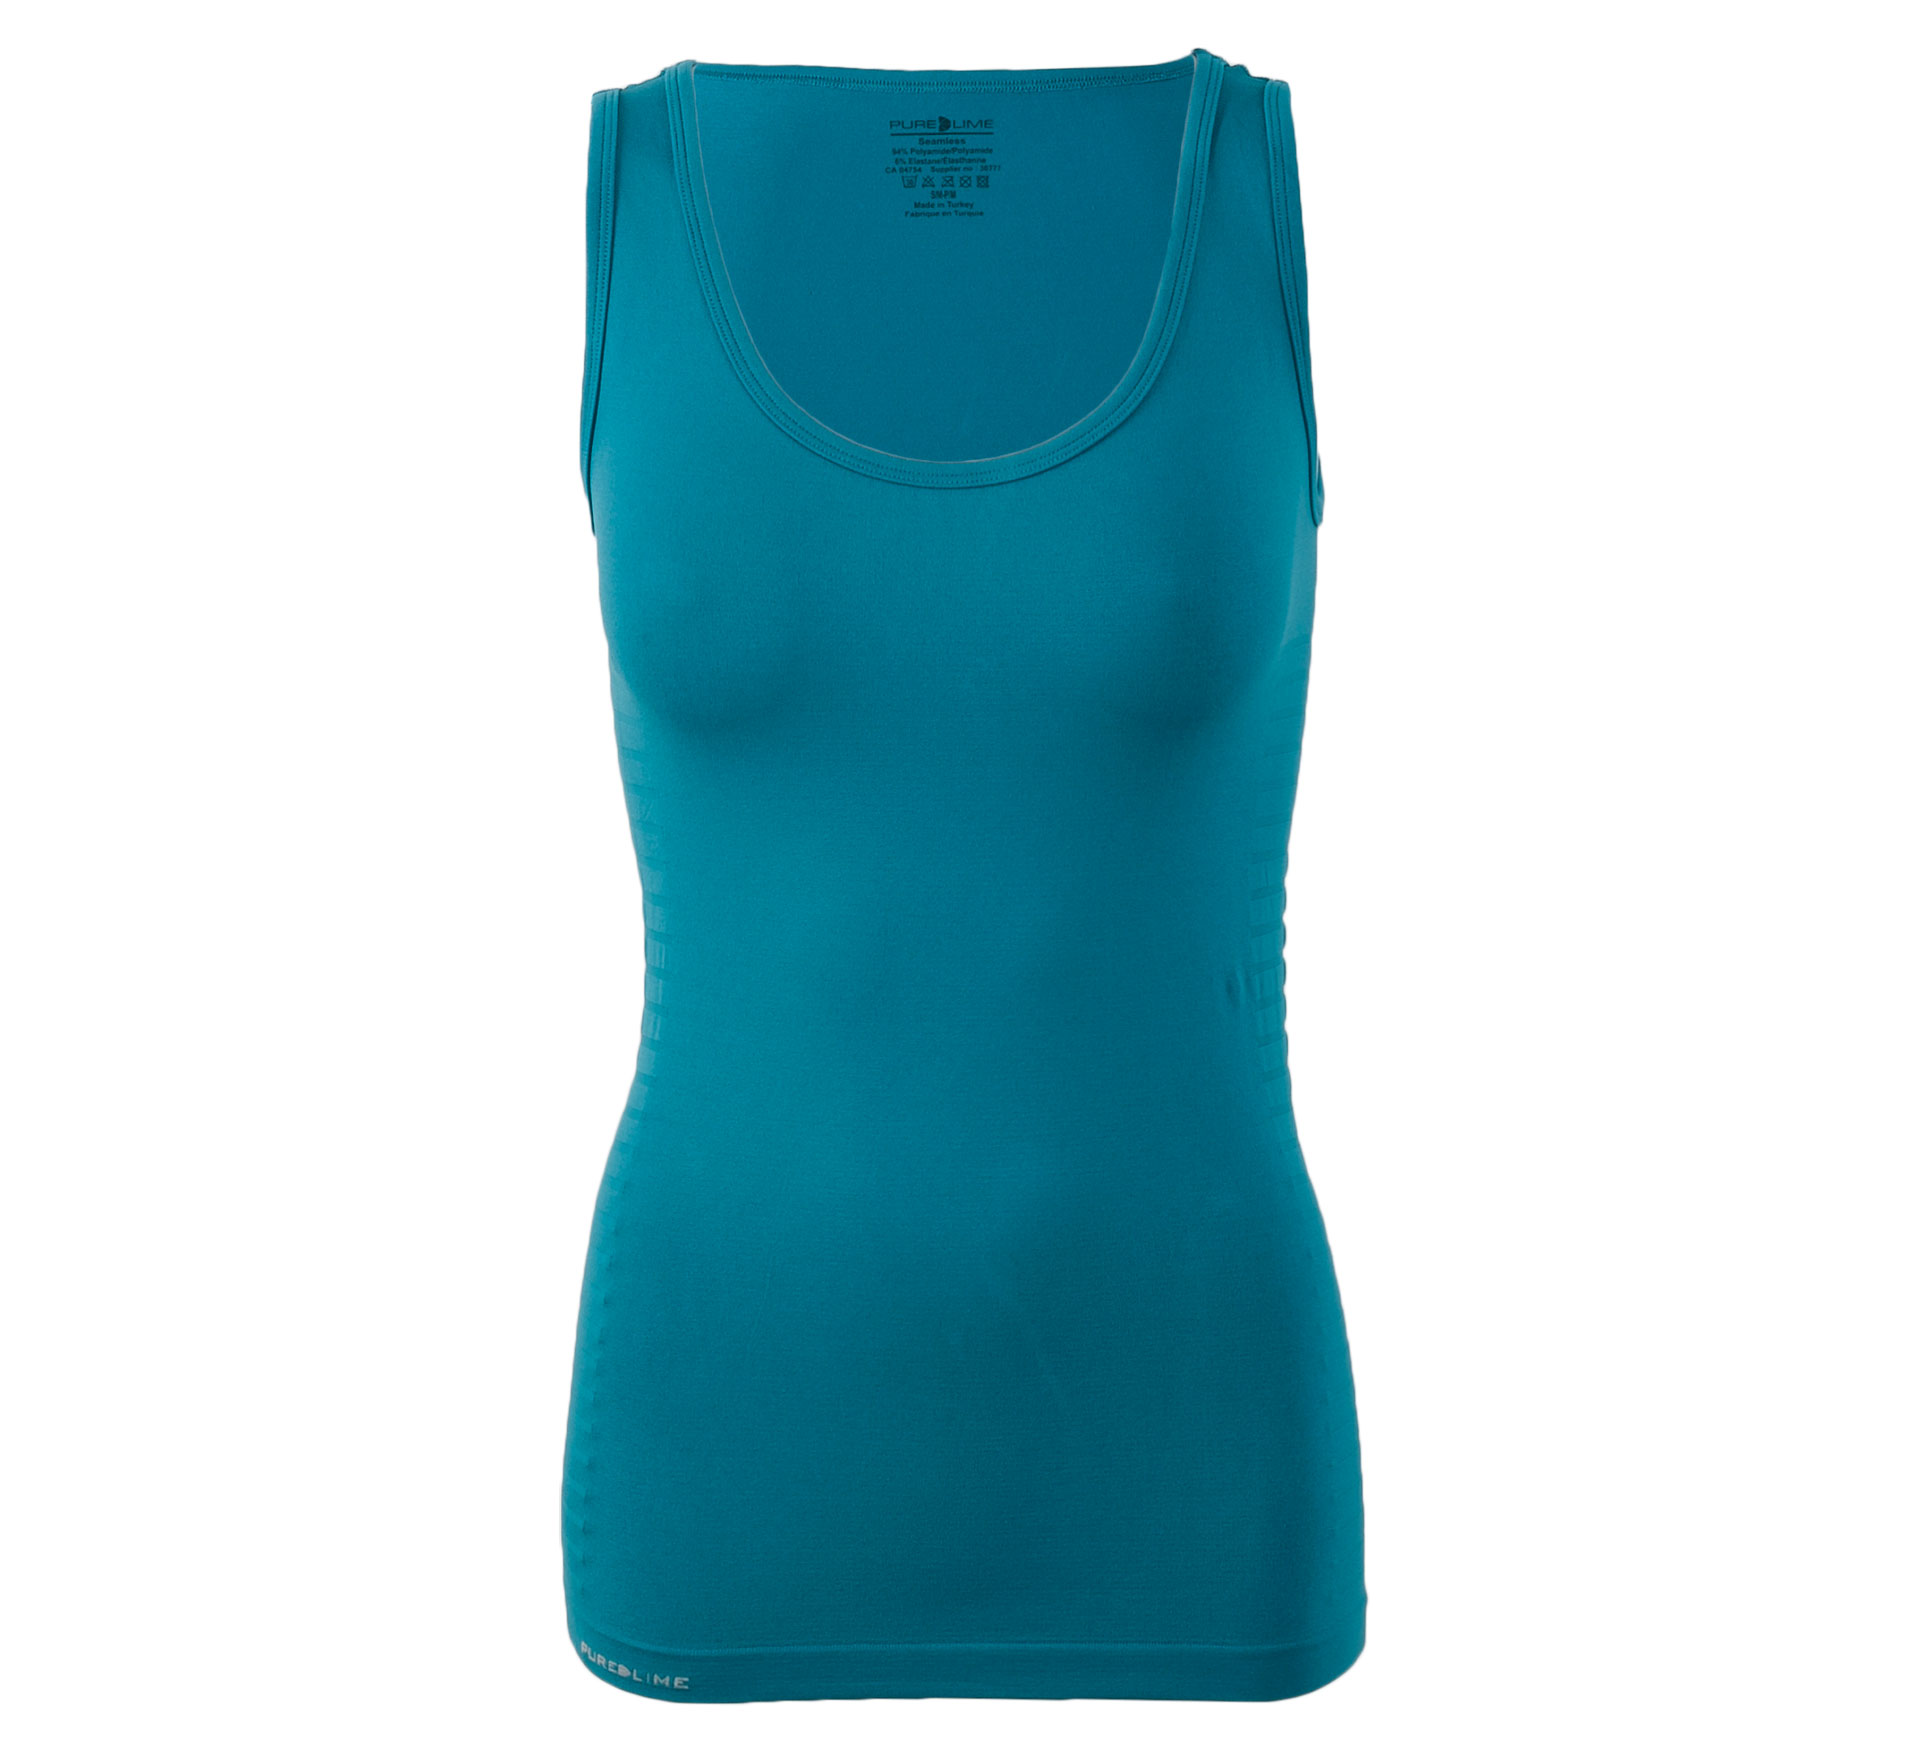 Pure Lime Naadloze Top Dames blauw/groen